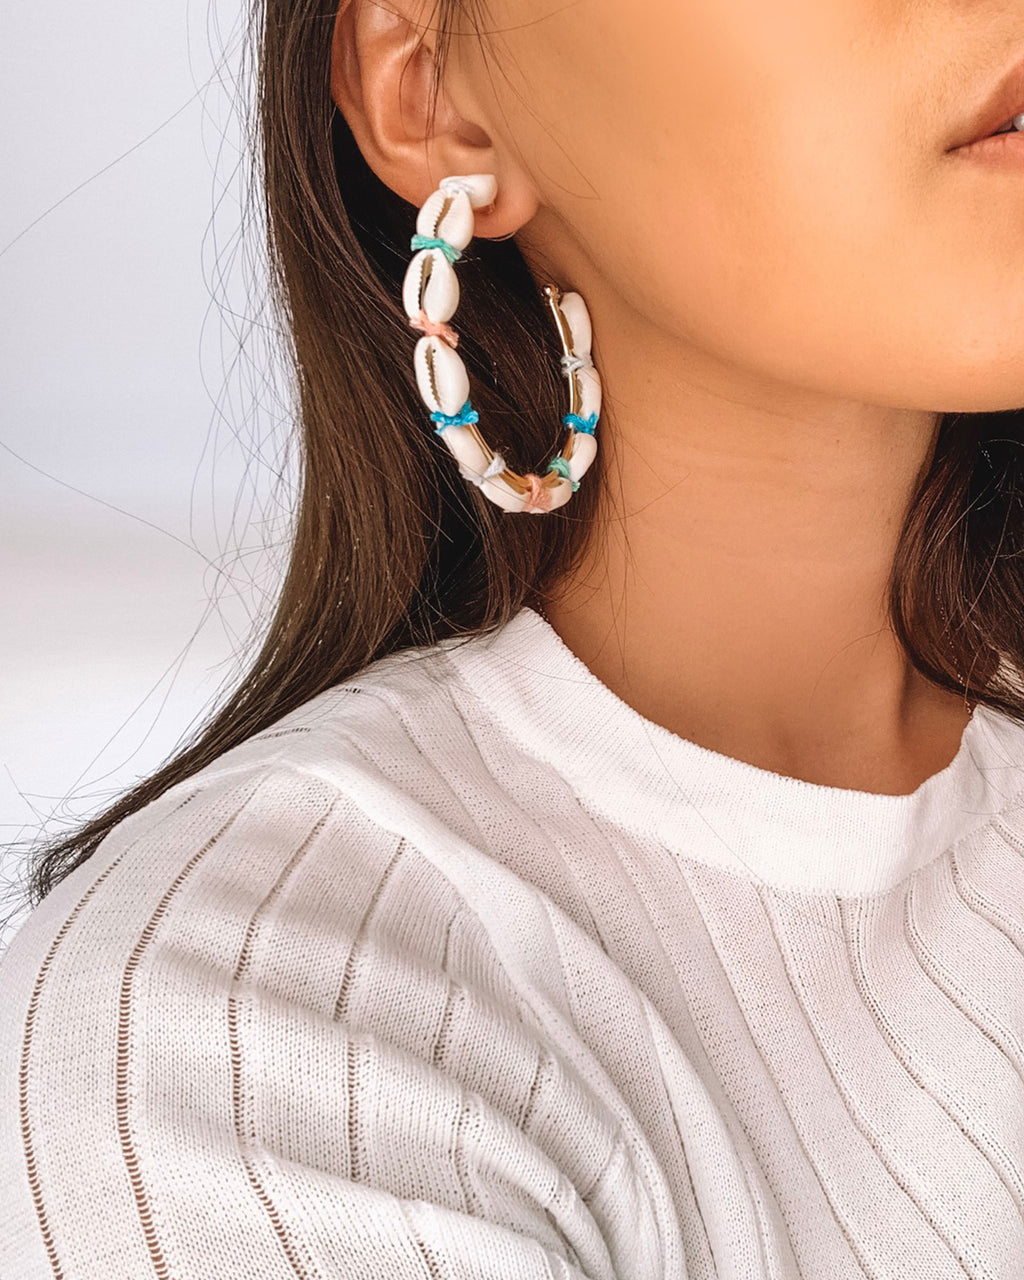 Izoa Curiosity Hoop Earrings White